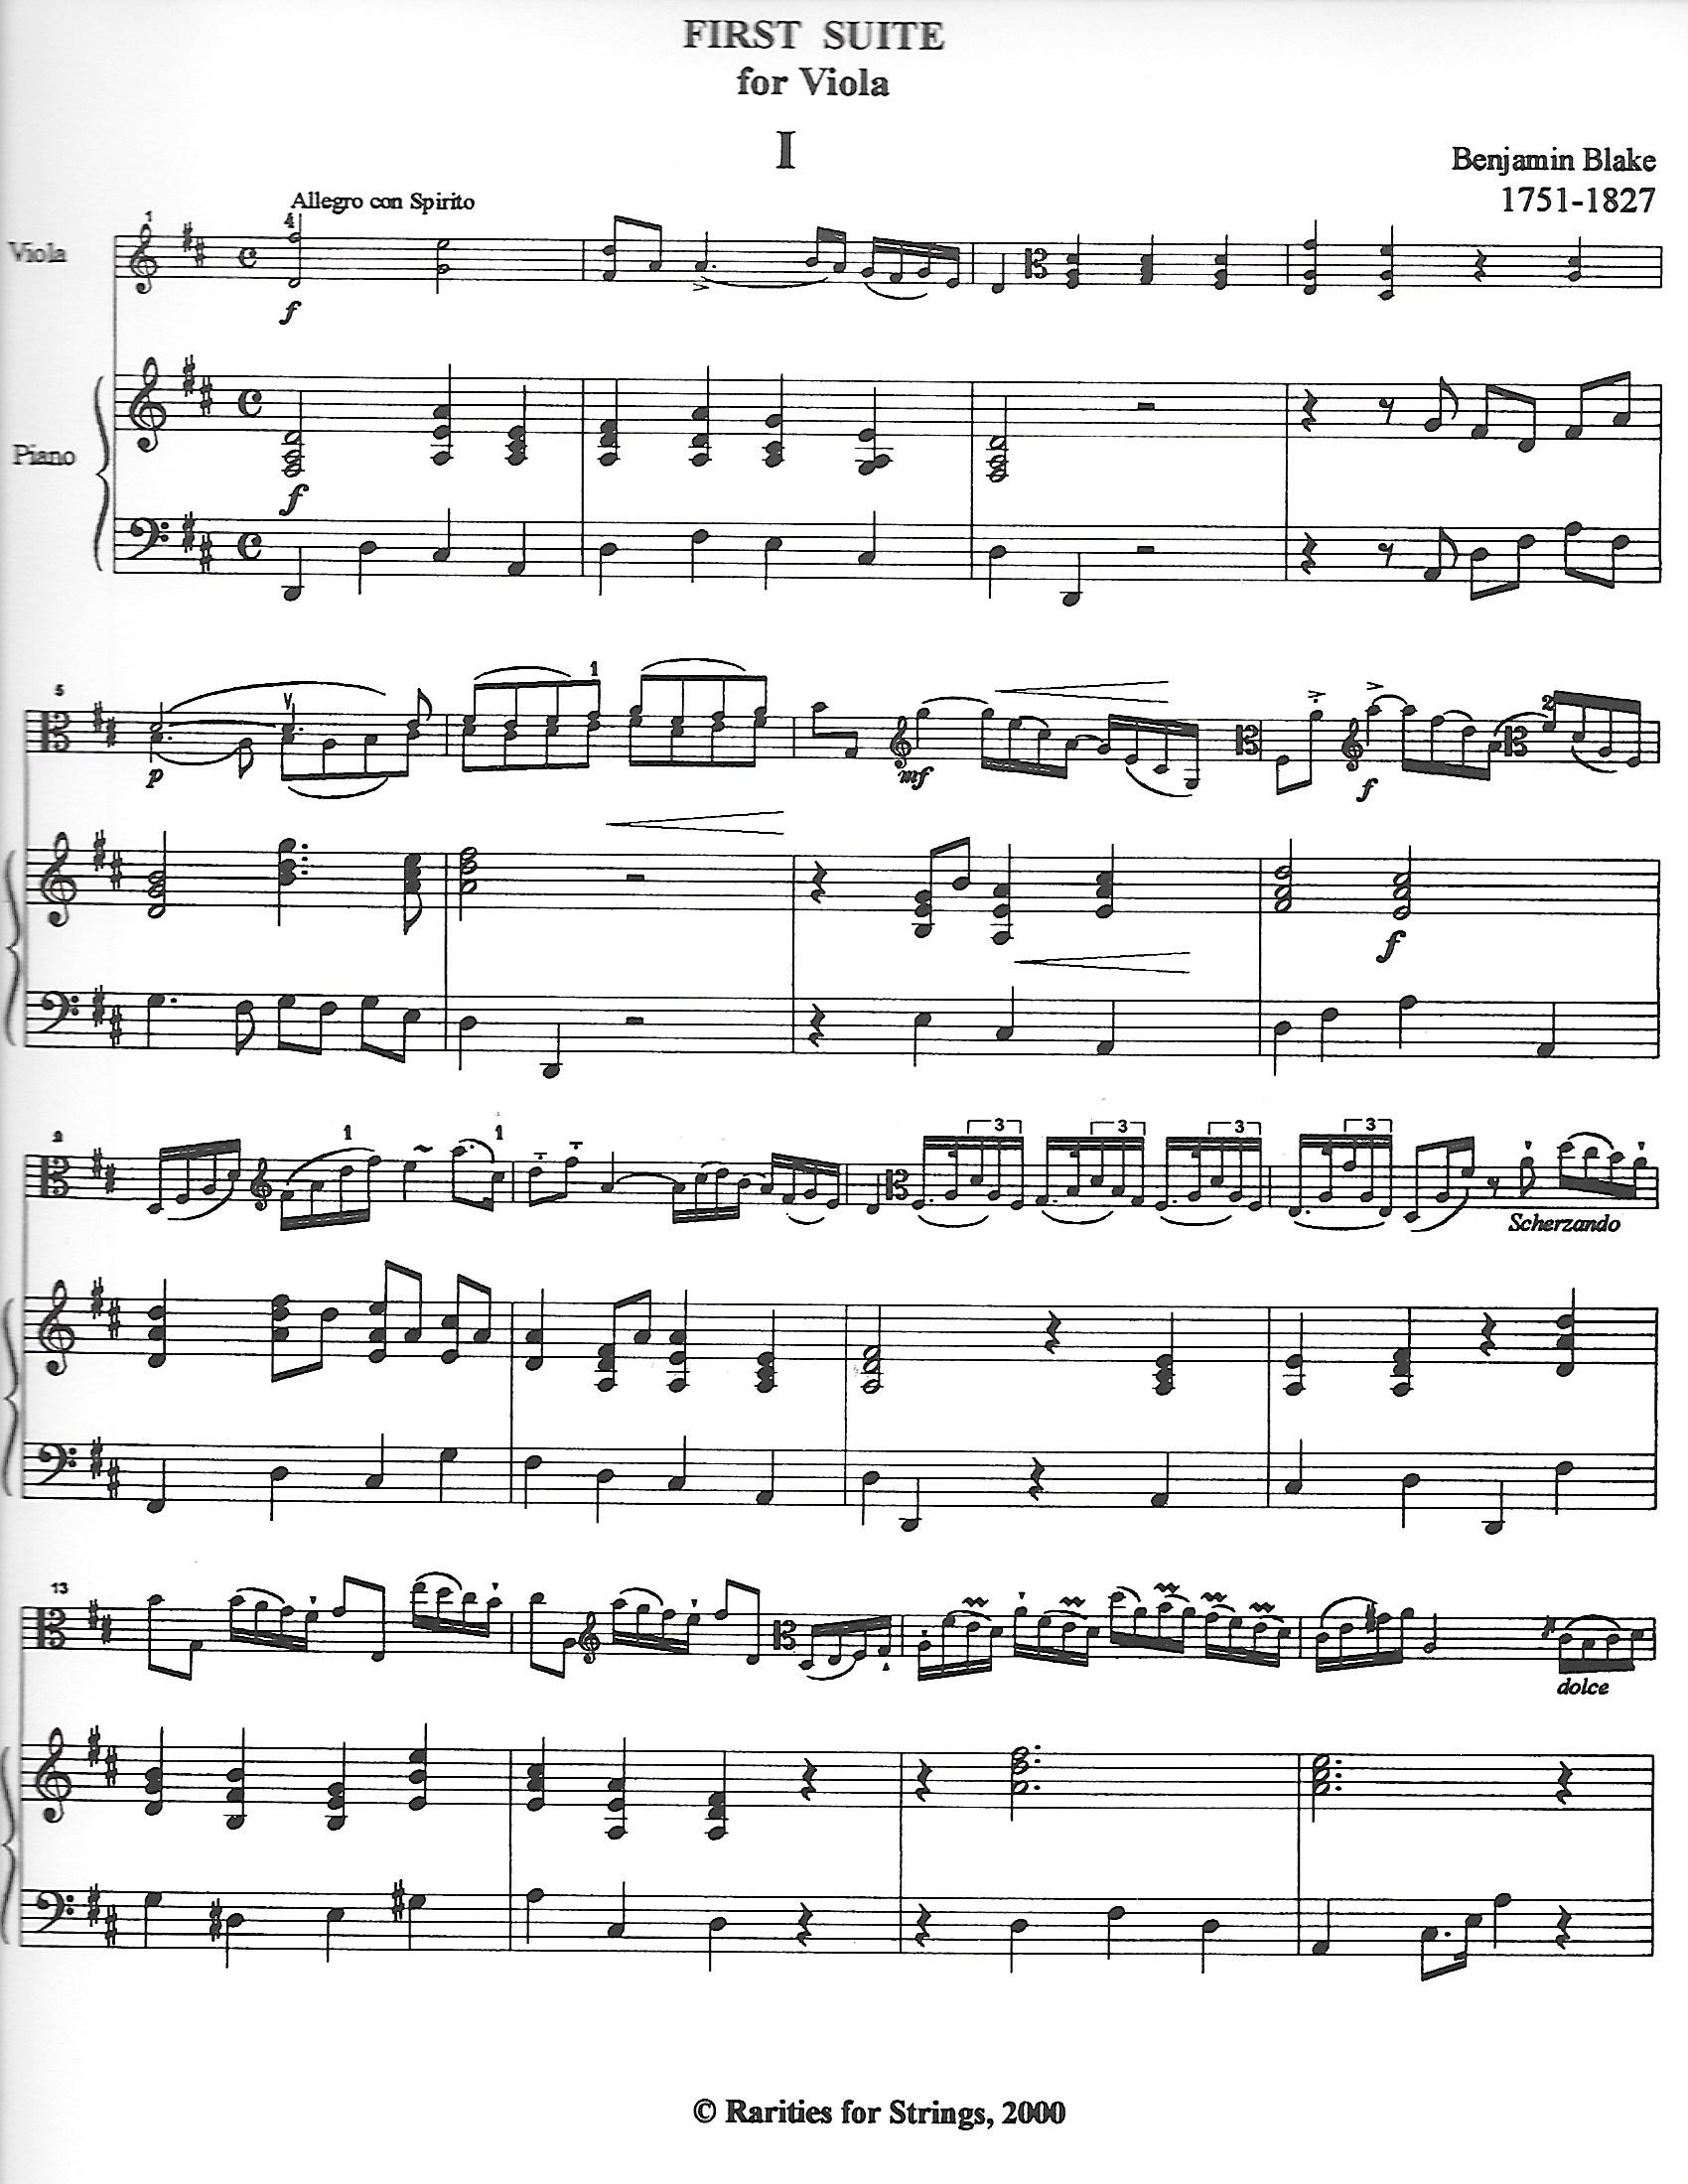 Blake, Benjamin - Solo for Viola in Three Movements with Cello or Piano Accompaniment - Music